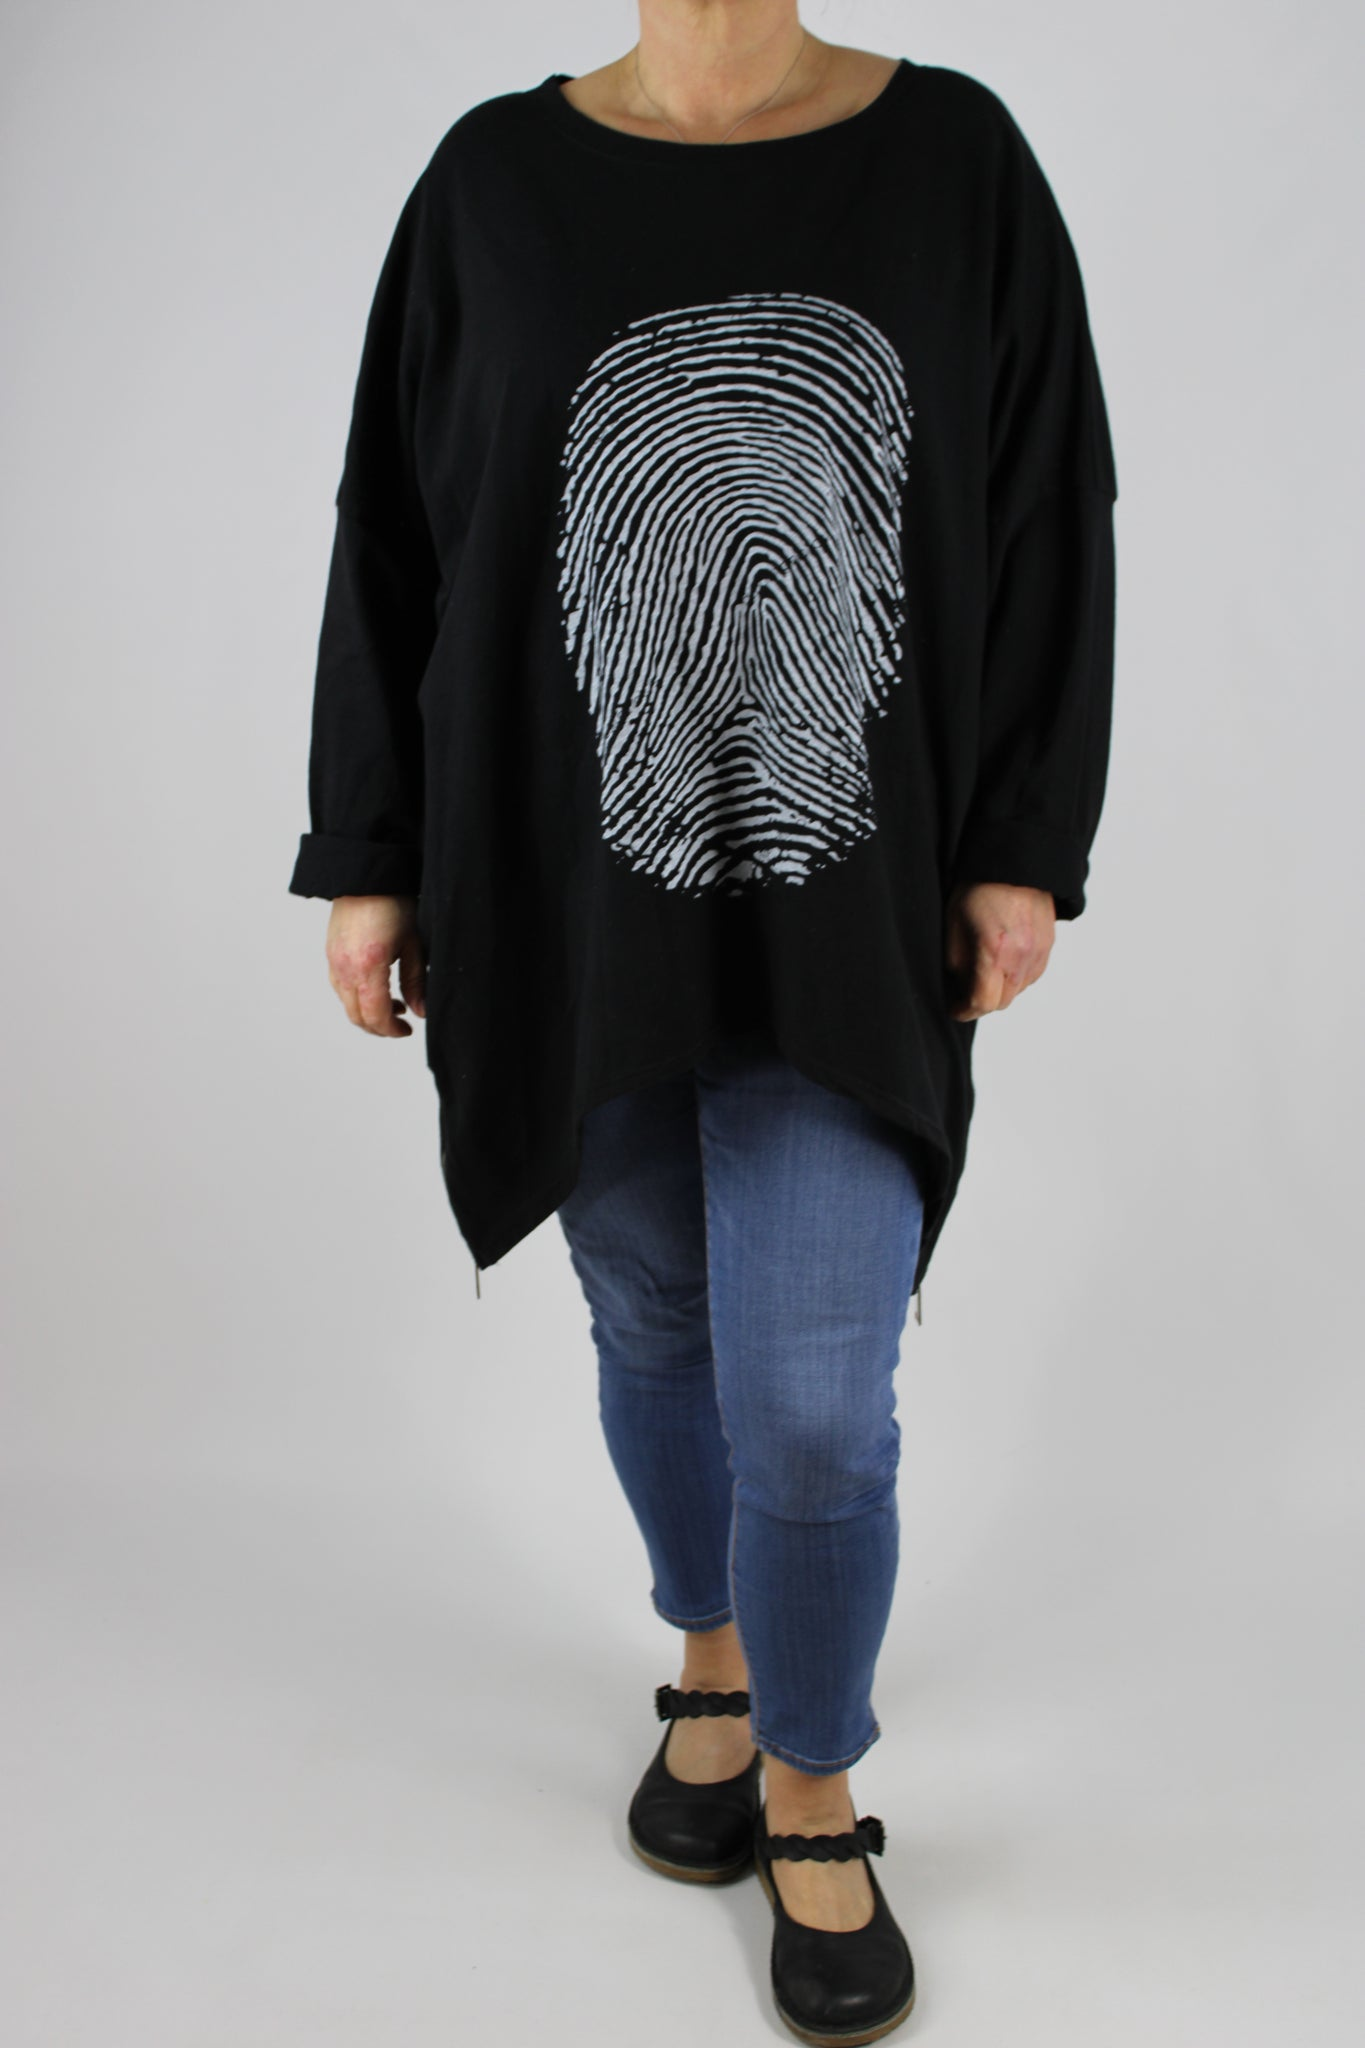 Italian Cotton Top Tunic Finger Print Print Plus Size 16 18 20 22 24 26 in Black